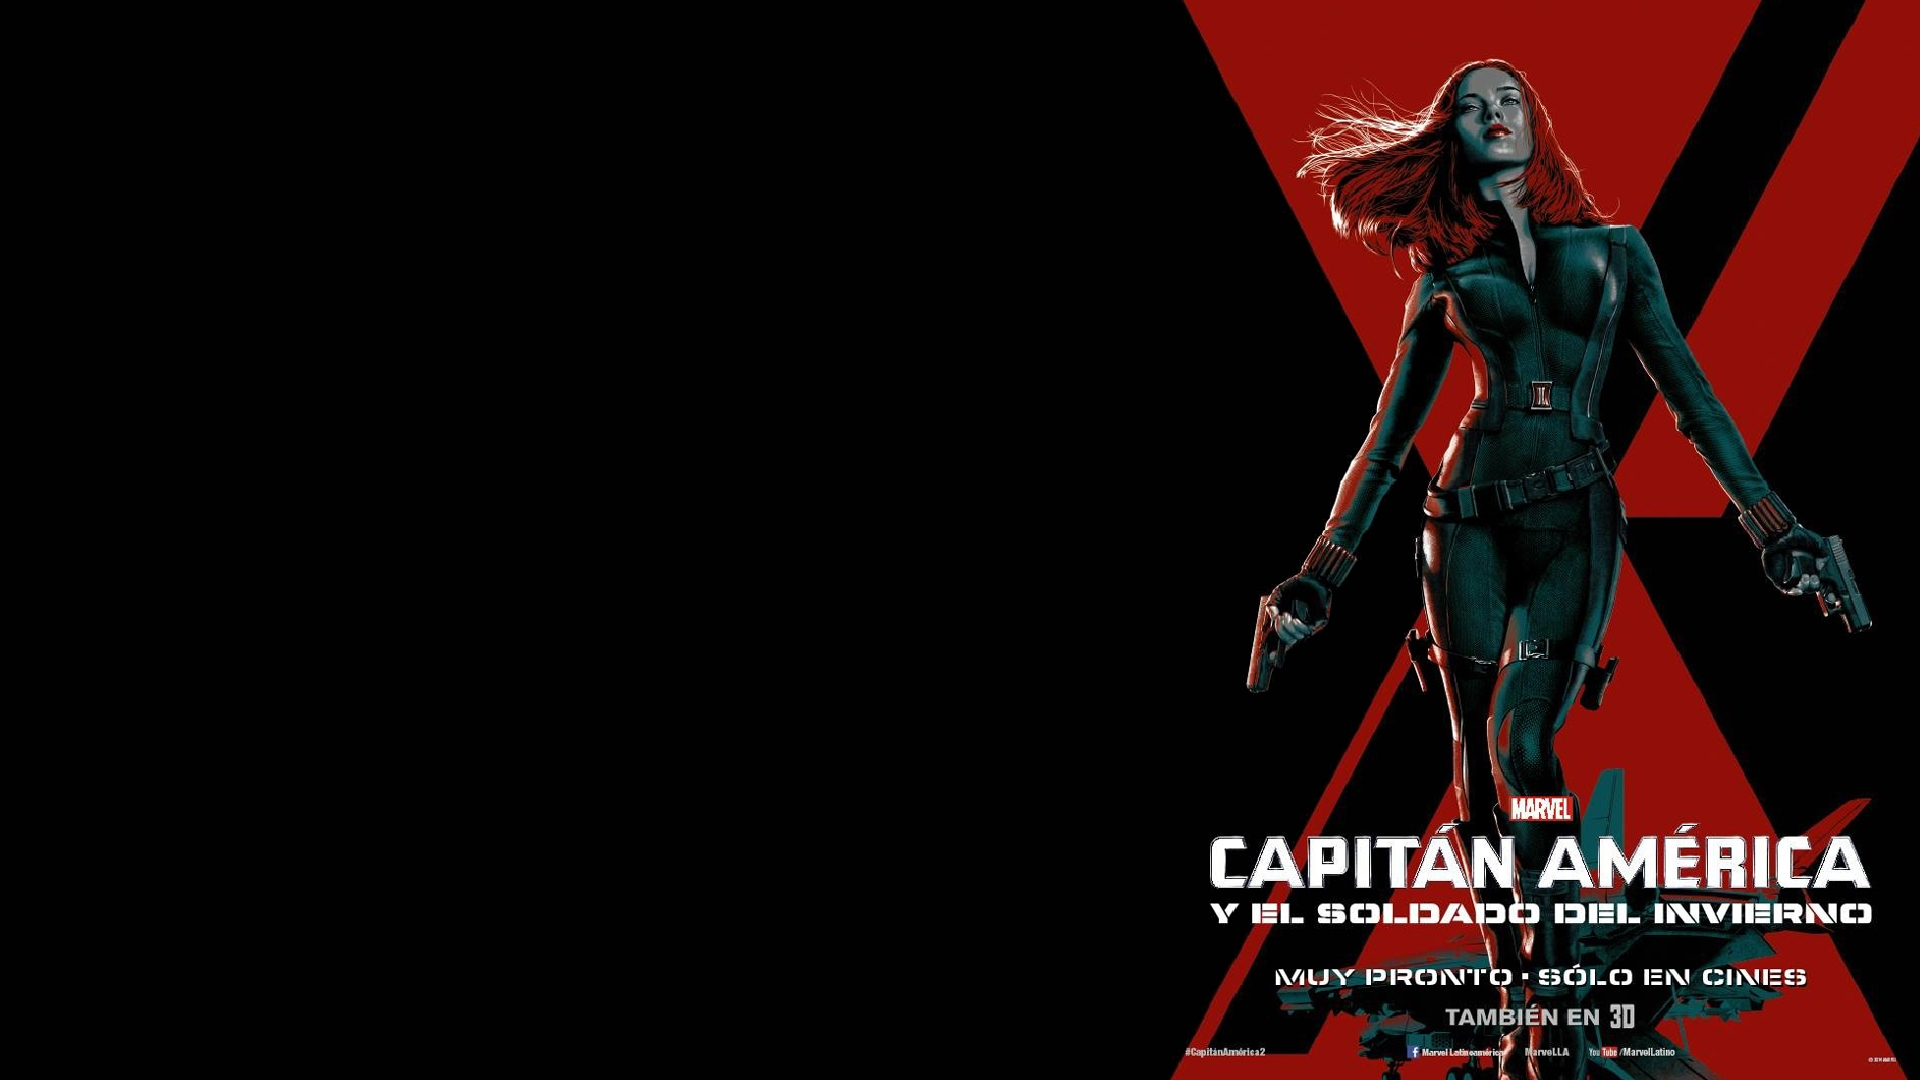 Fantastic Wallpaper Marvel Winter Soldier - mZ4Cof  Perfect Image Reference_1276.jpg